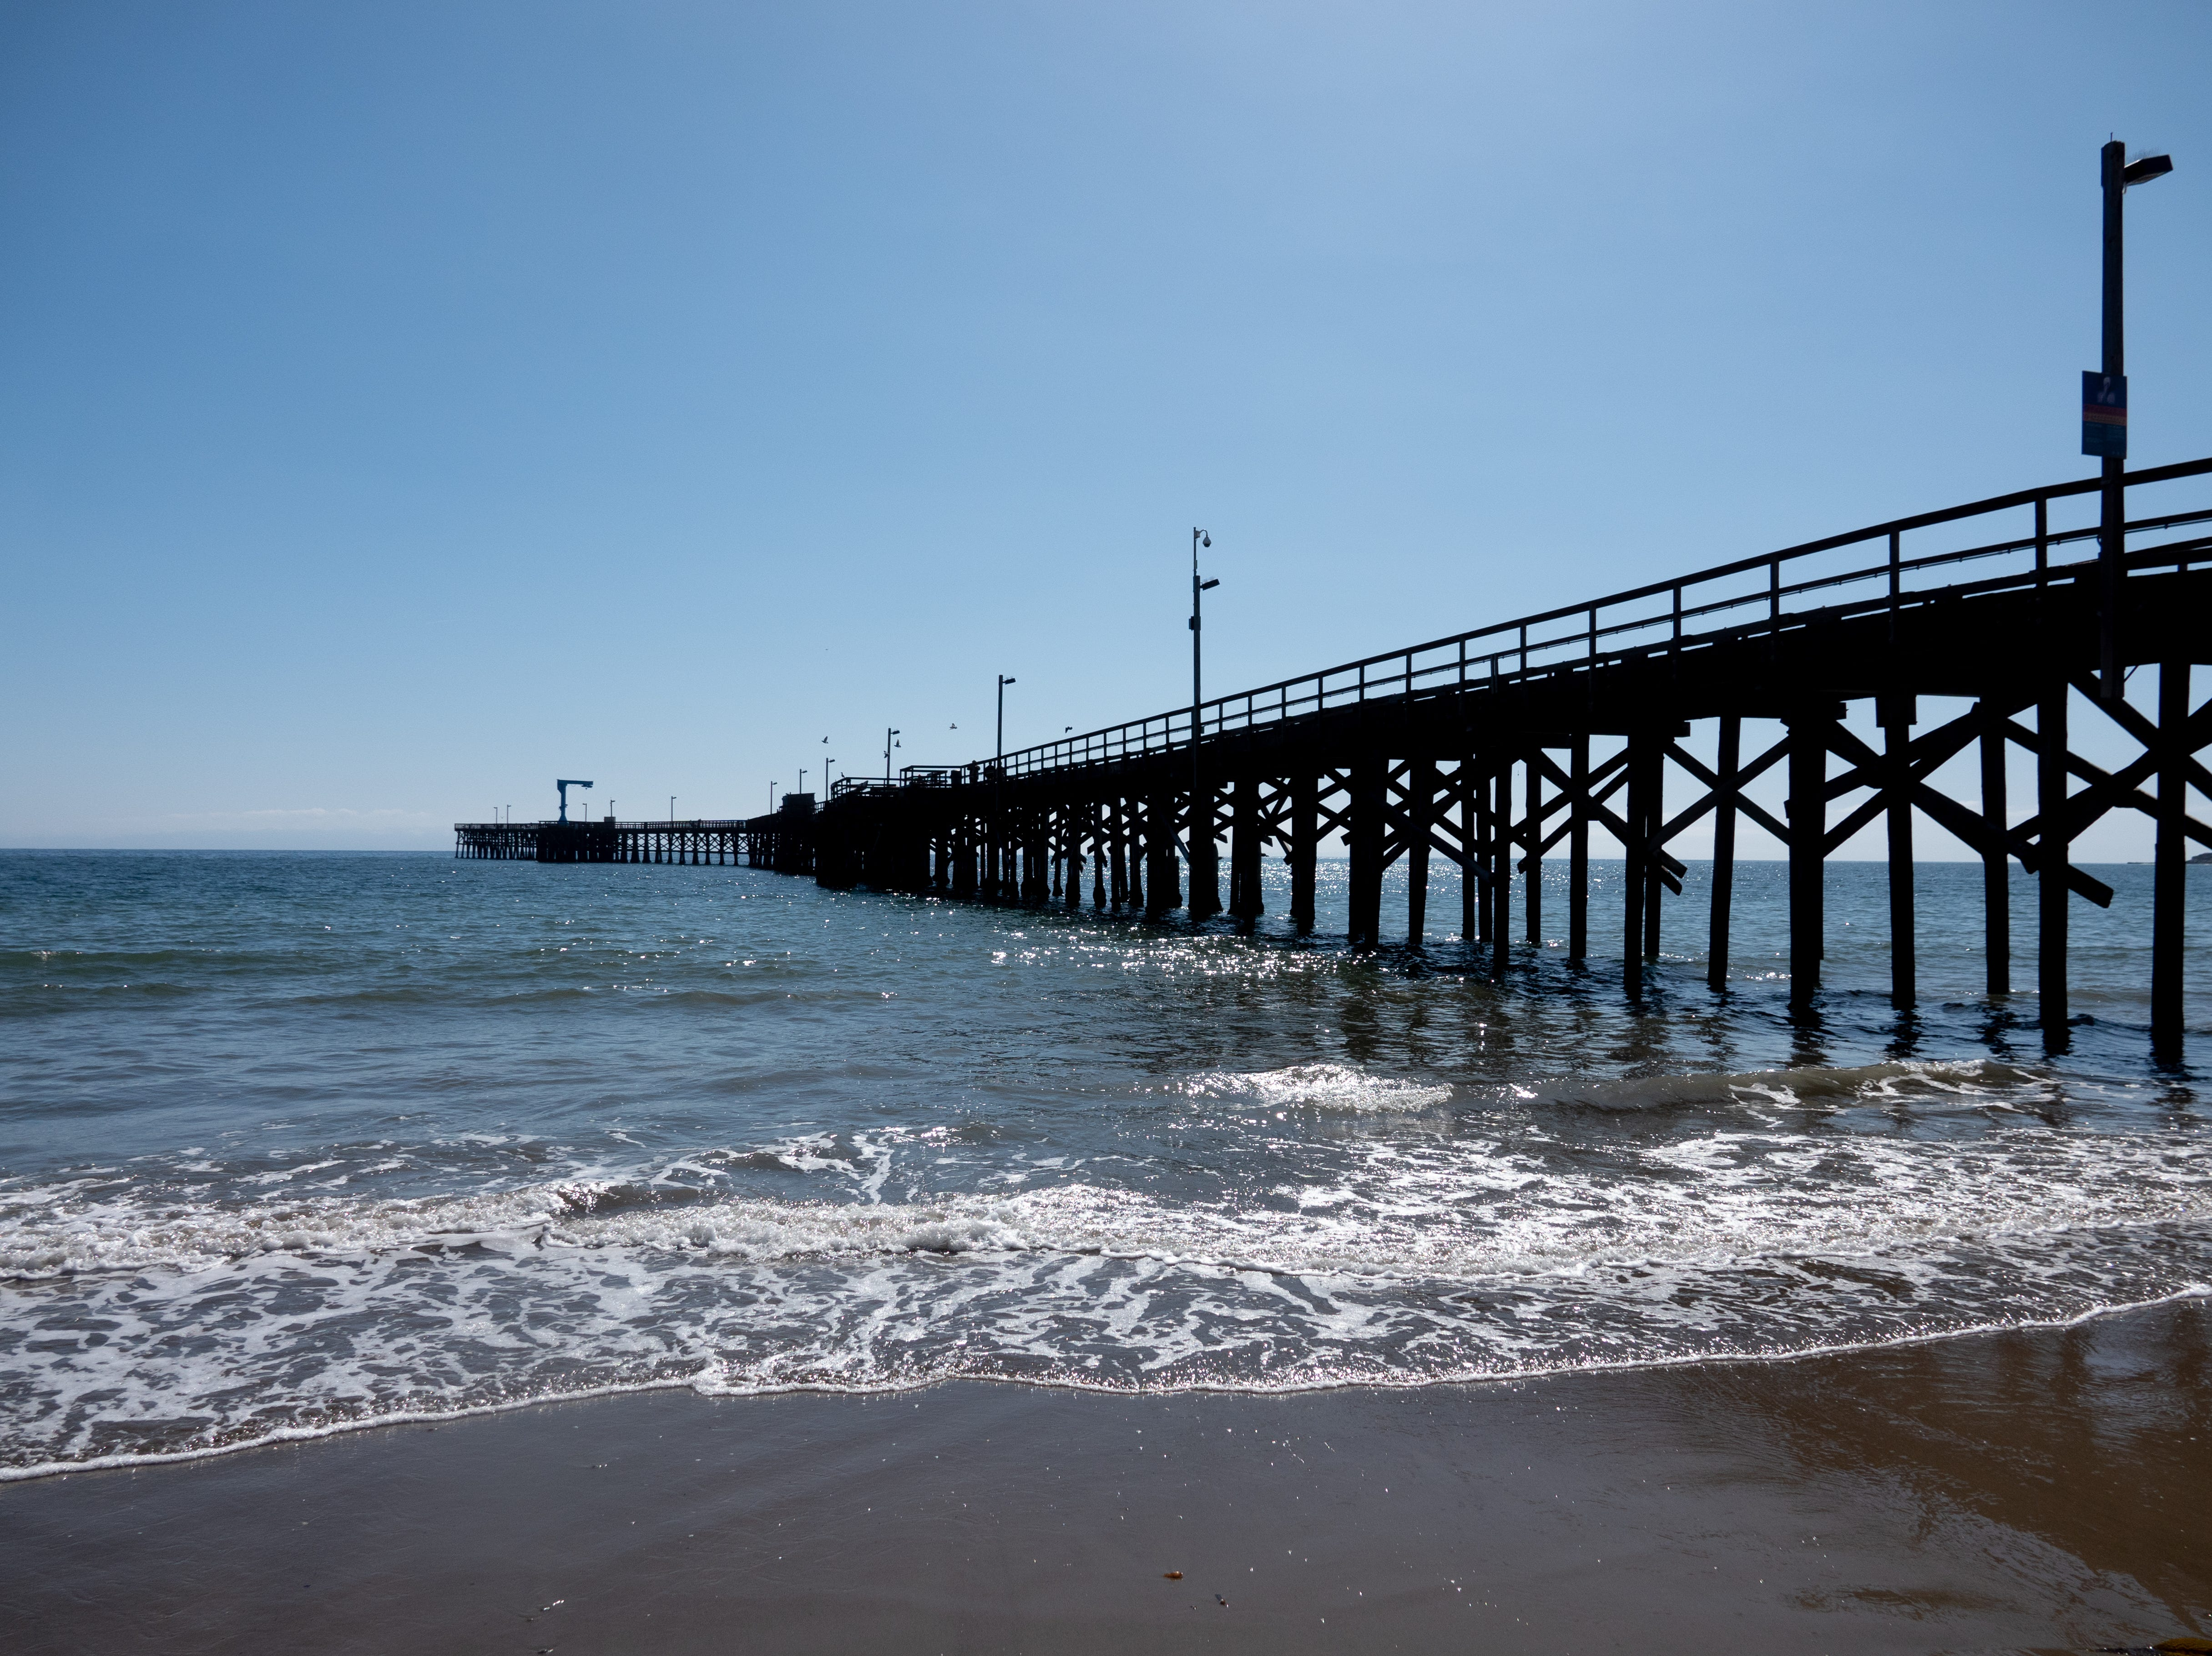 A pier in Goleta, California, just up the road from Santa Barbara.